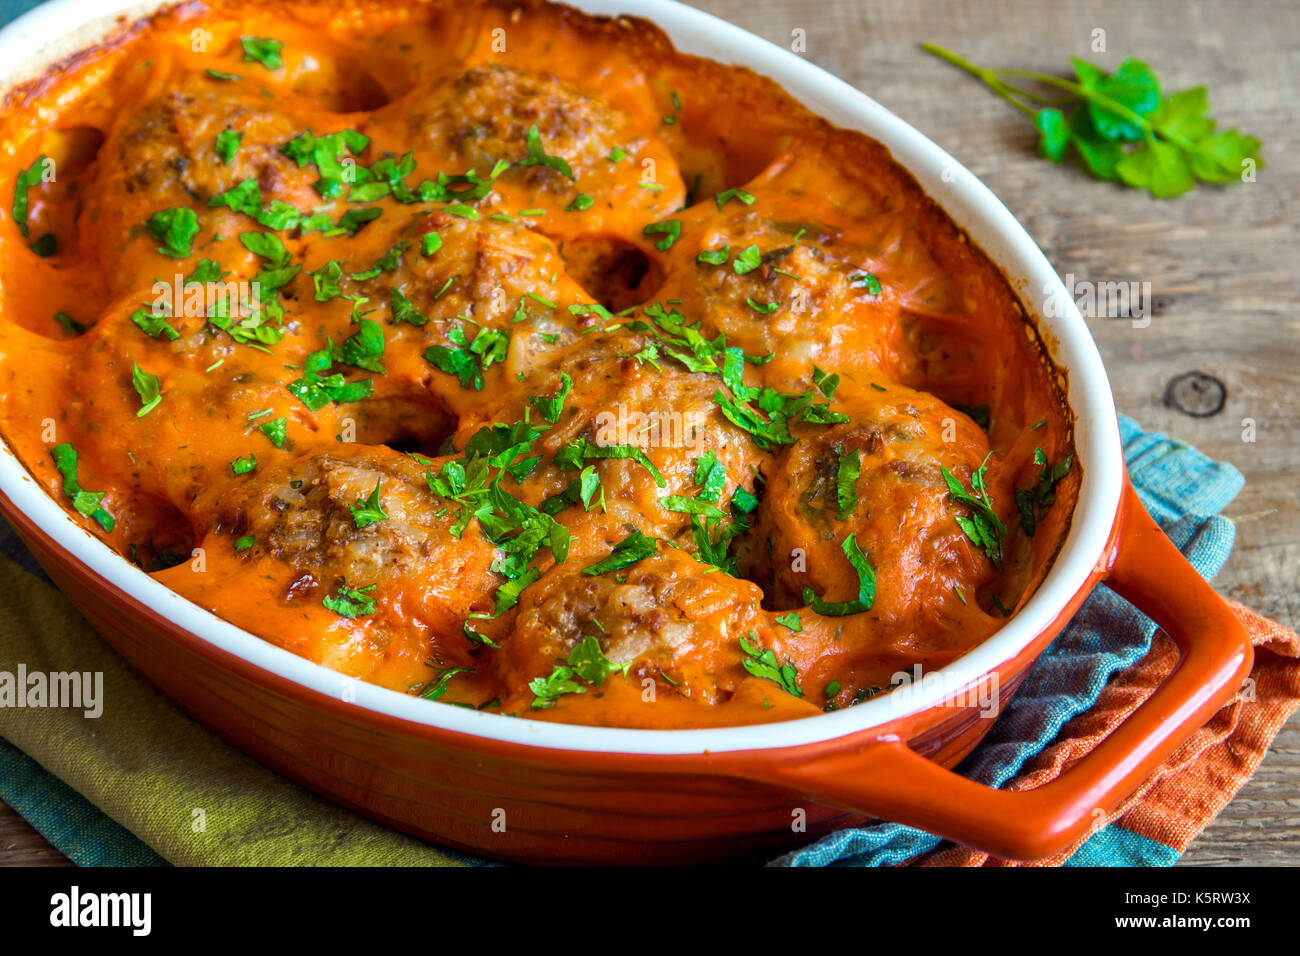 Baked meatballs with tomato sauce and parsley in baking dish over rustic wooden background - Stock Image